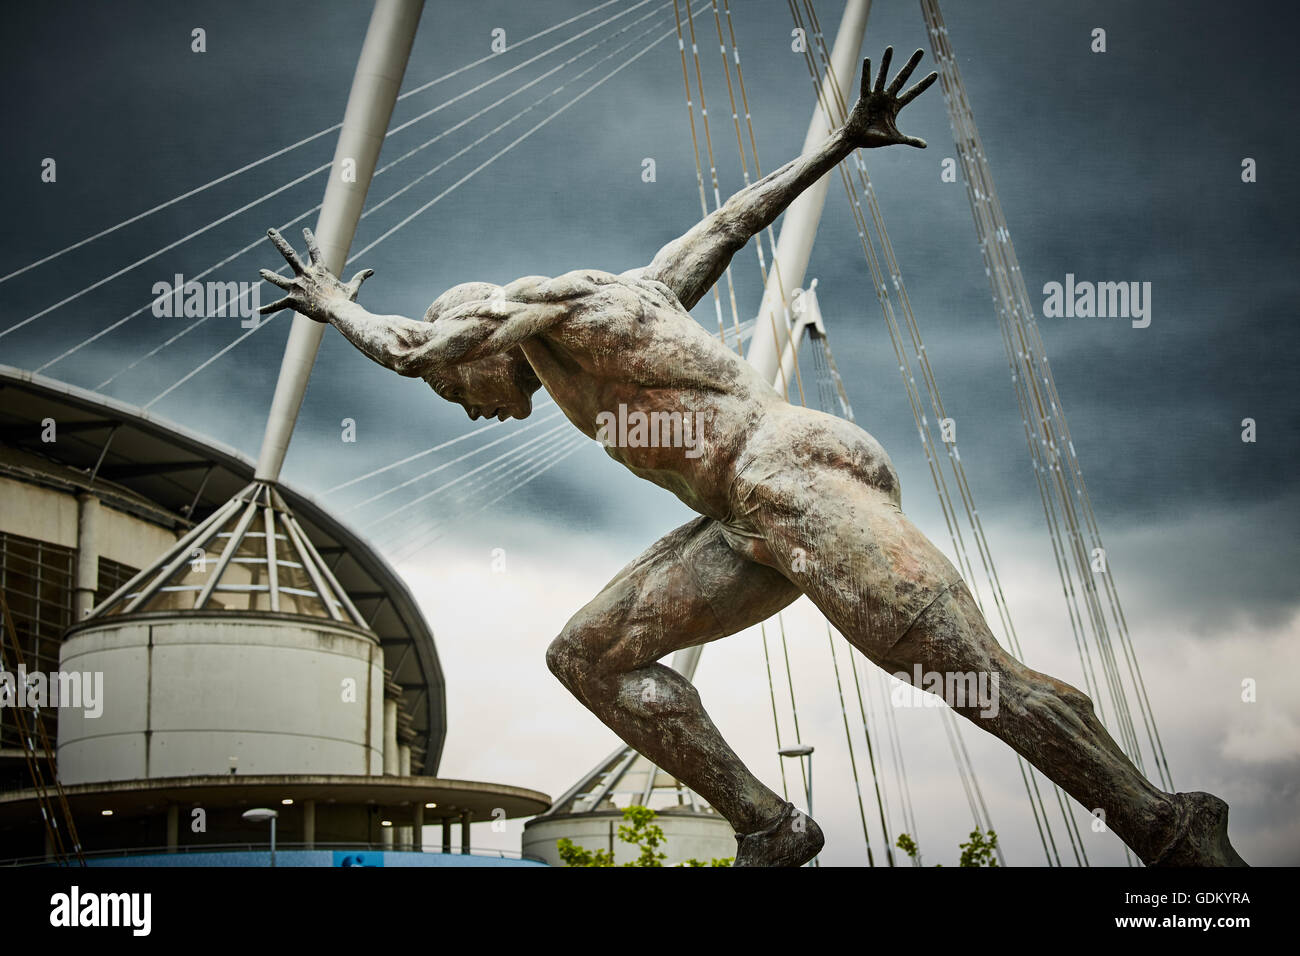 A statue of a sprinter the moment after the starting pistol near to the City of Manchester Etihad Stadium - Stock Image